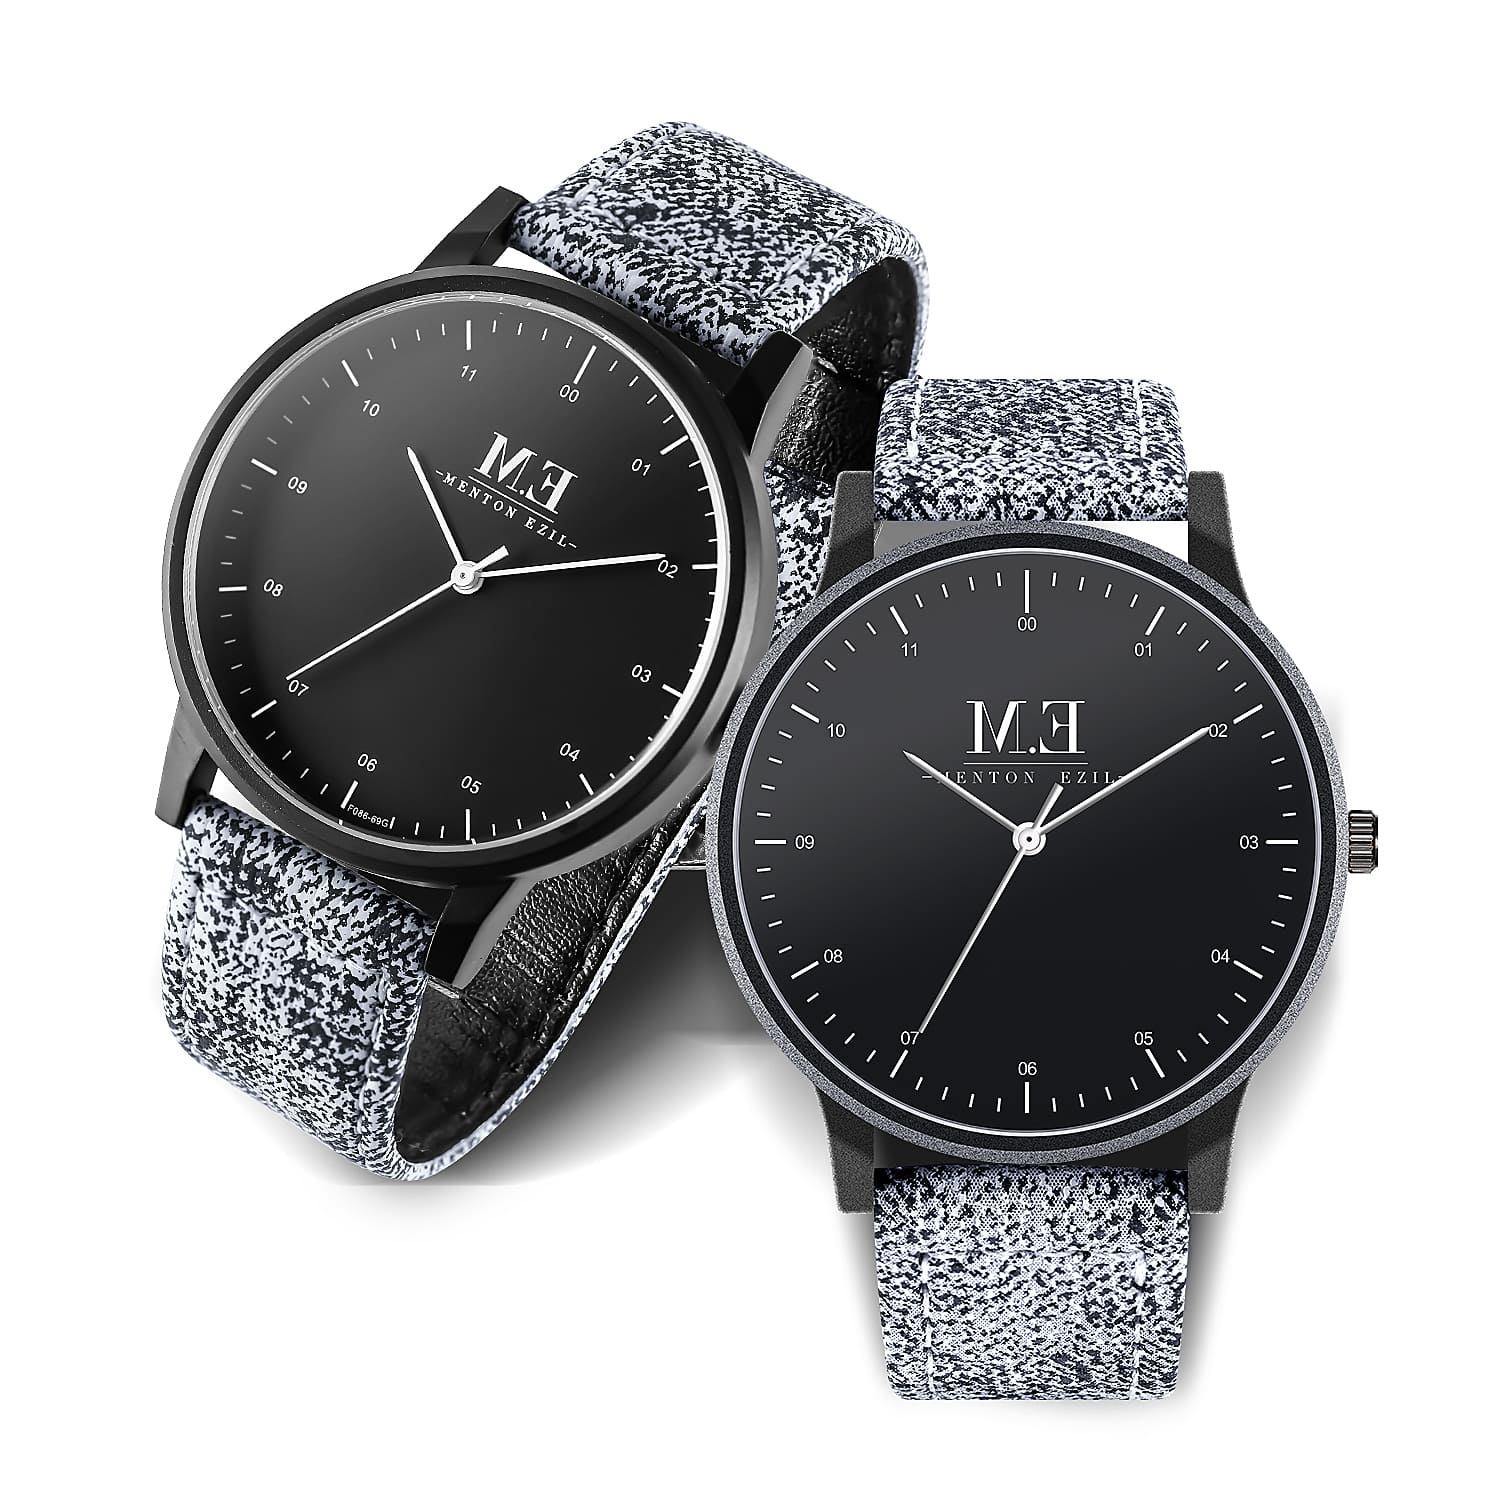 Couple Wrist Watches Gift Set, Leather Bracelet Men Women Quartz WristWatches,Set of 2 $14.99